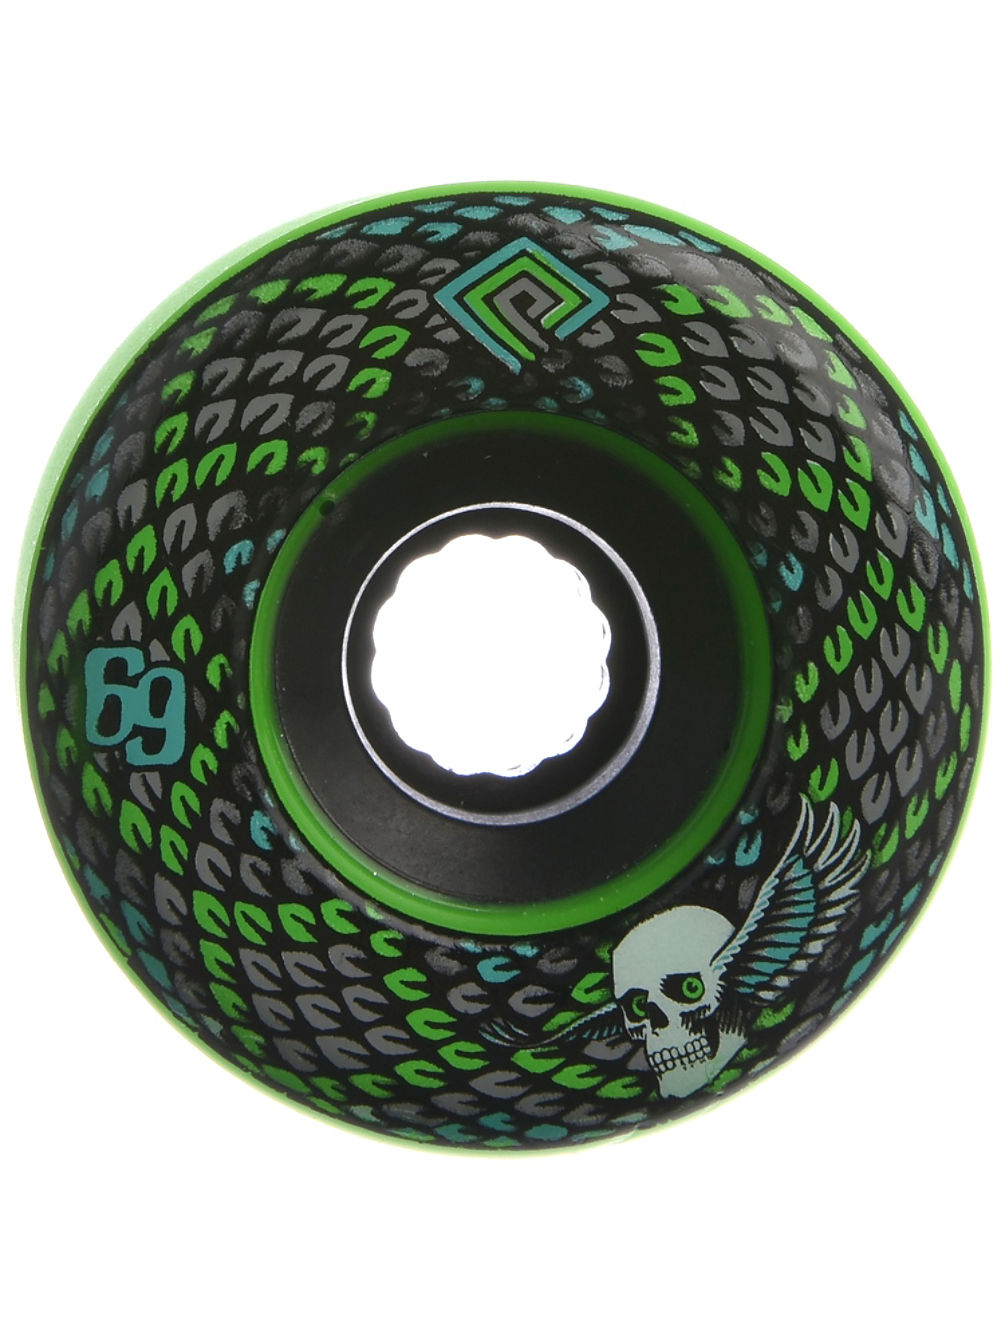 Ssf Snakes 75A 66mm Wheels